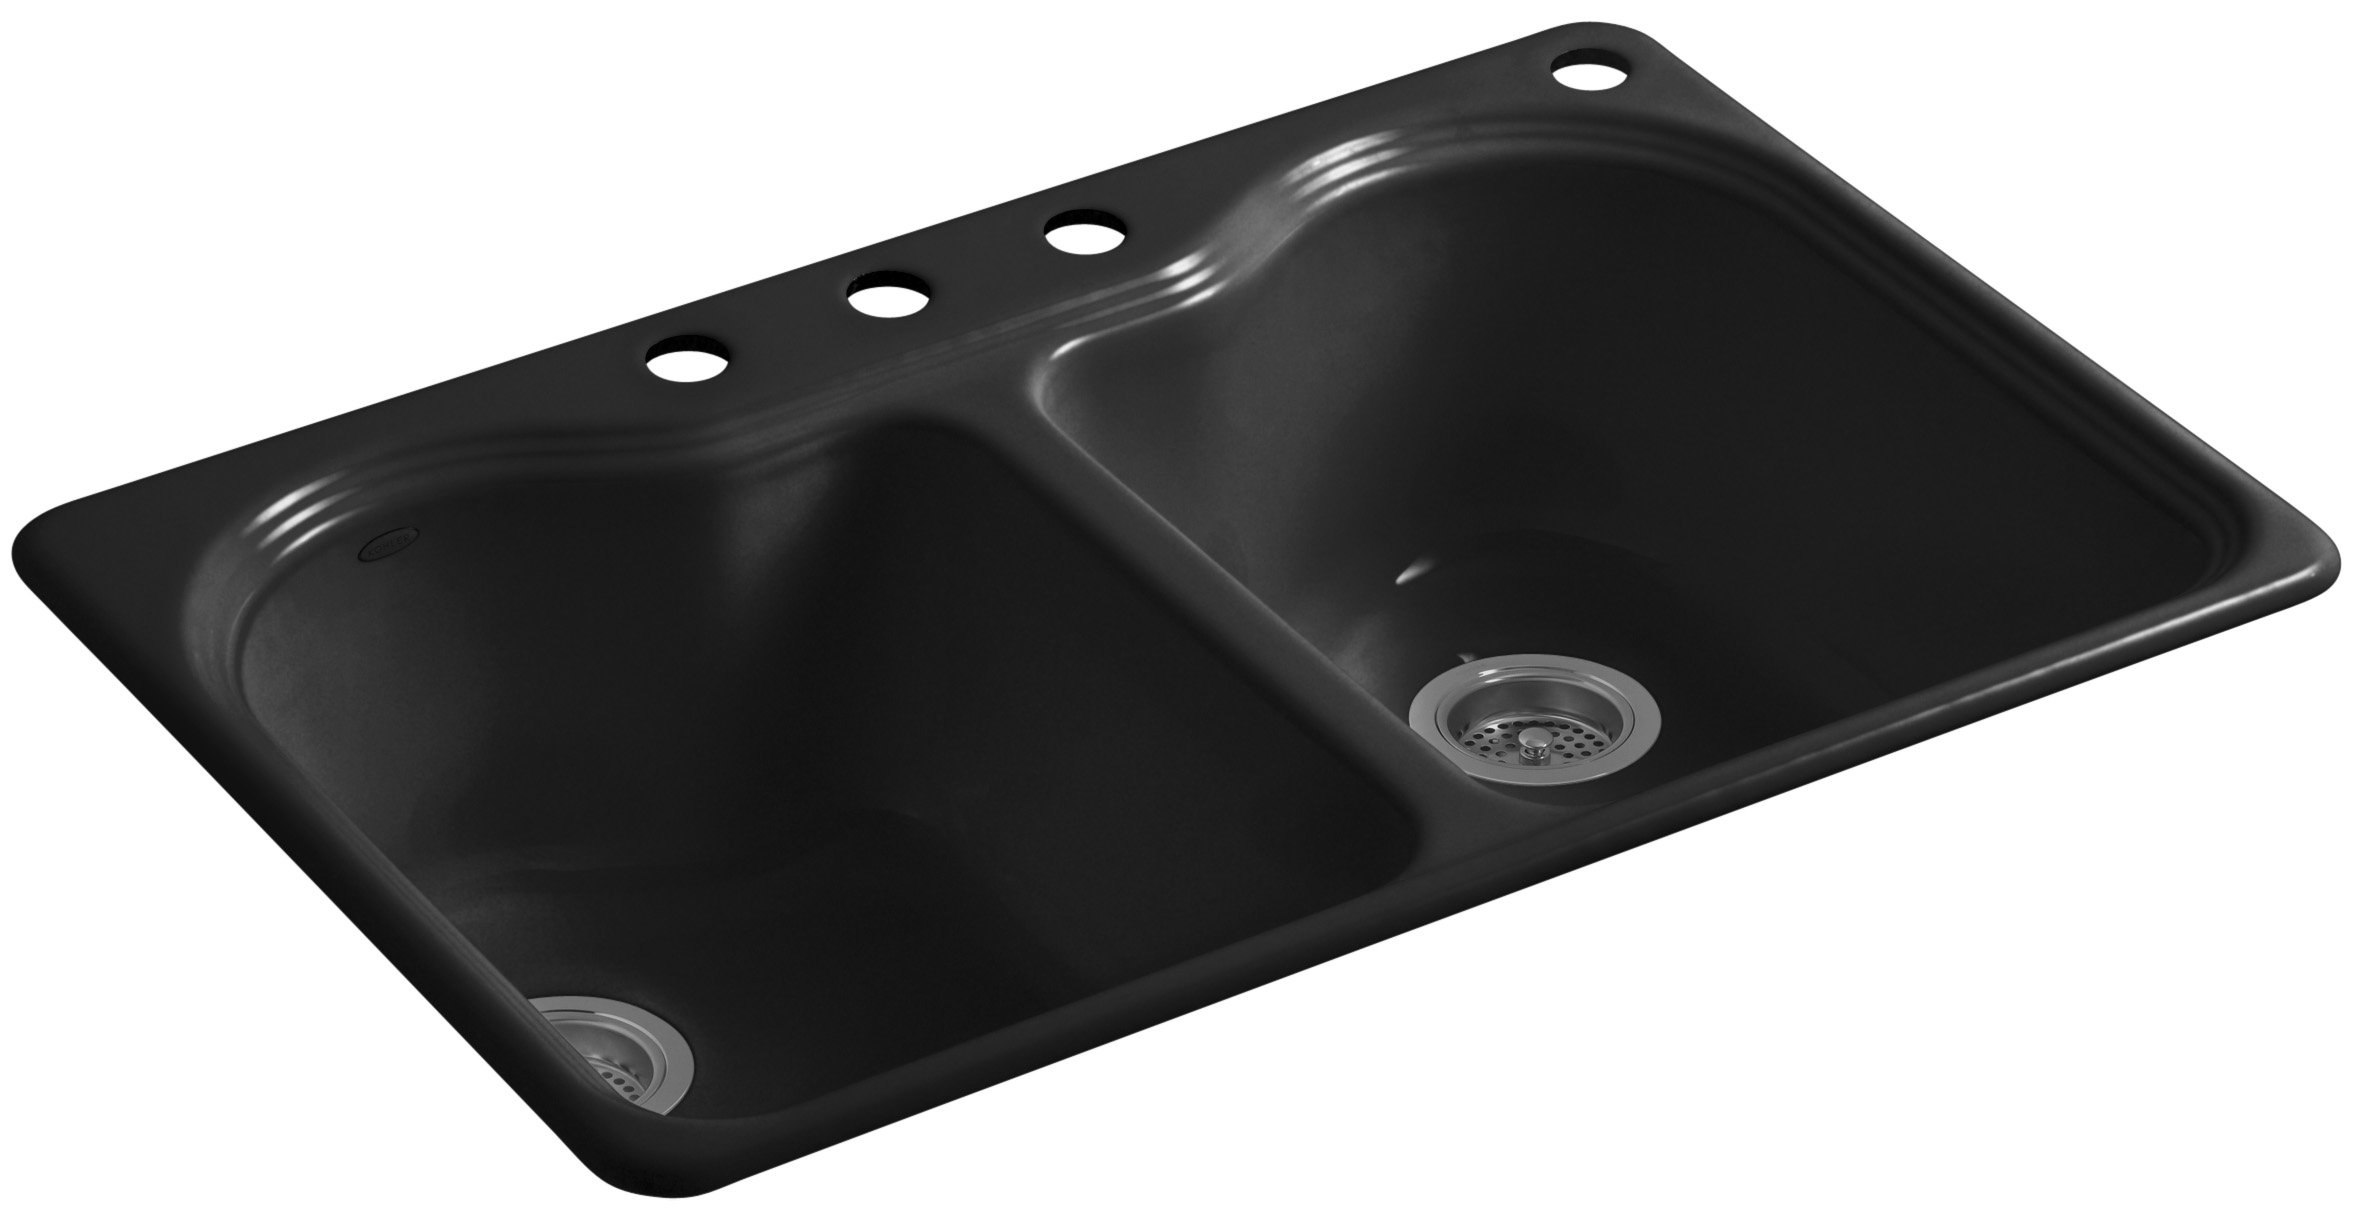 Kohler K-5818-4-7 Hartland Self-Rimming Kitchen Sink with Four-Hole Faucet Drilling, Black Black